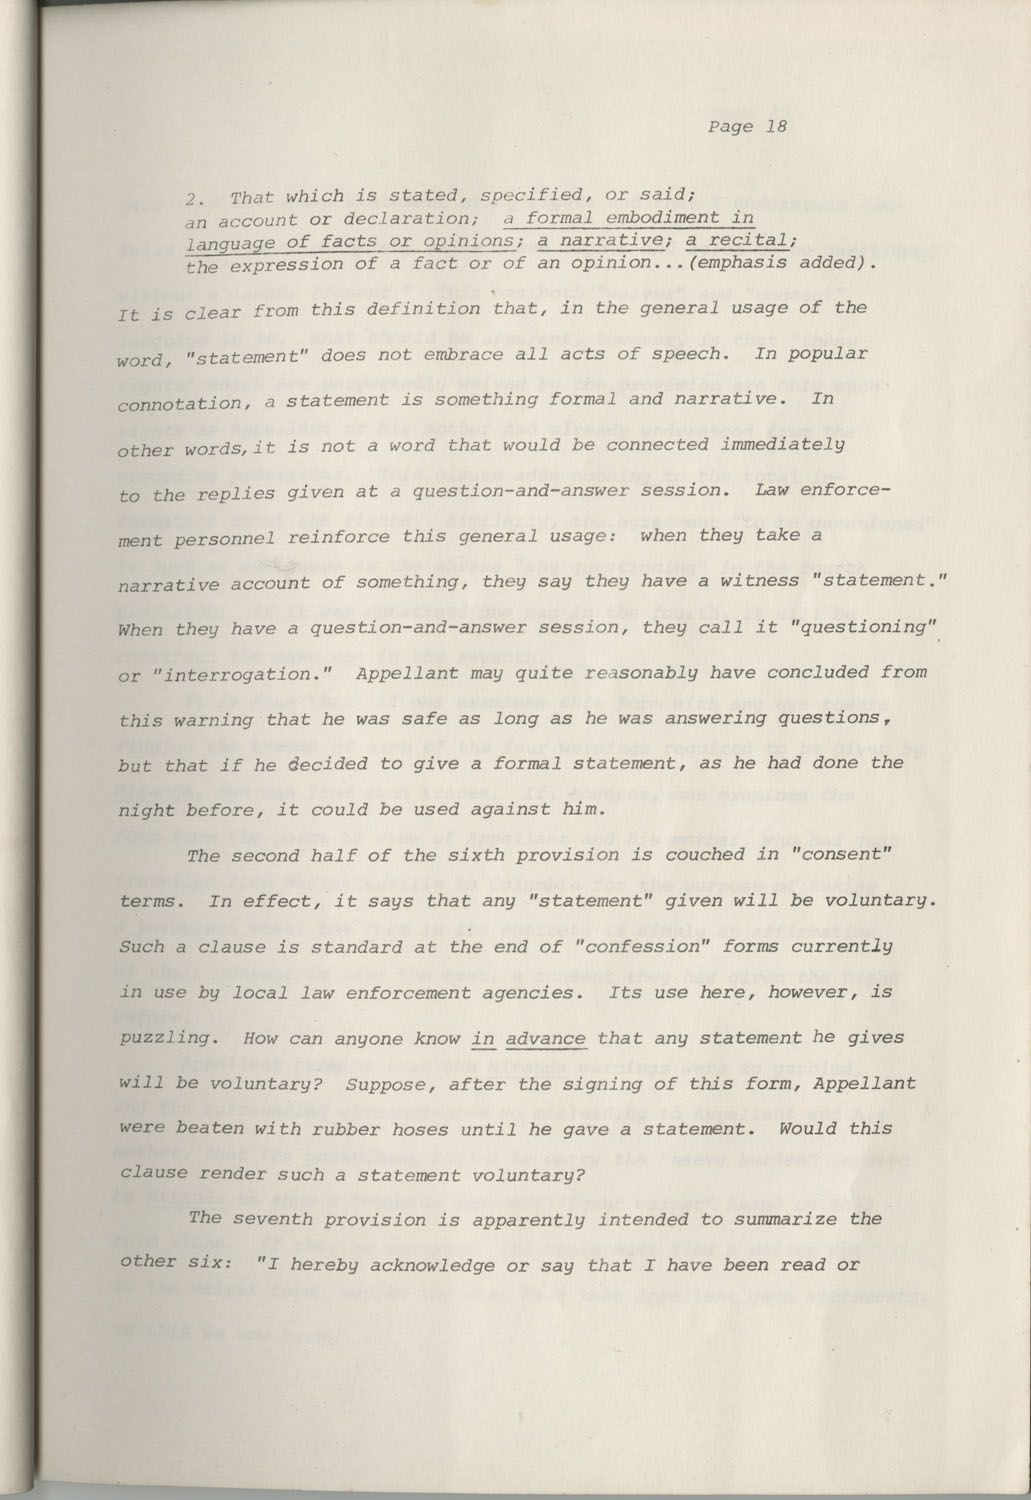 State of South Carolina vs. Robert Lee Smith, Brief of Appellant, Page 18